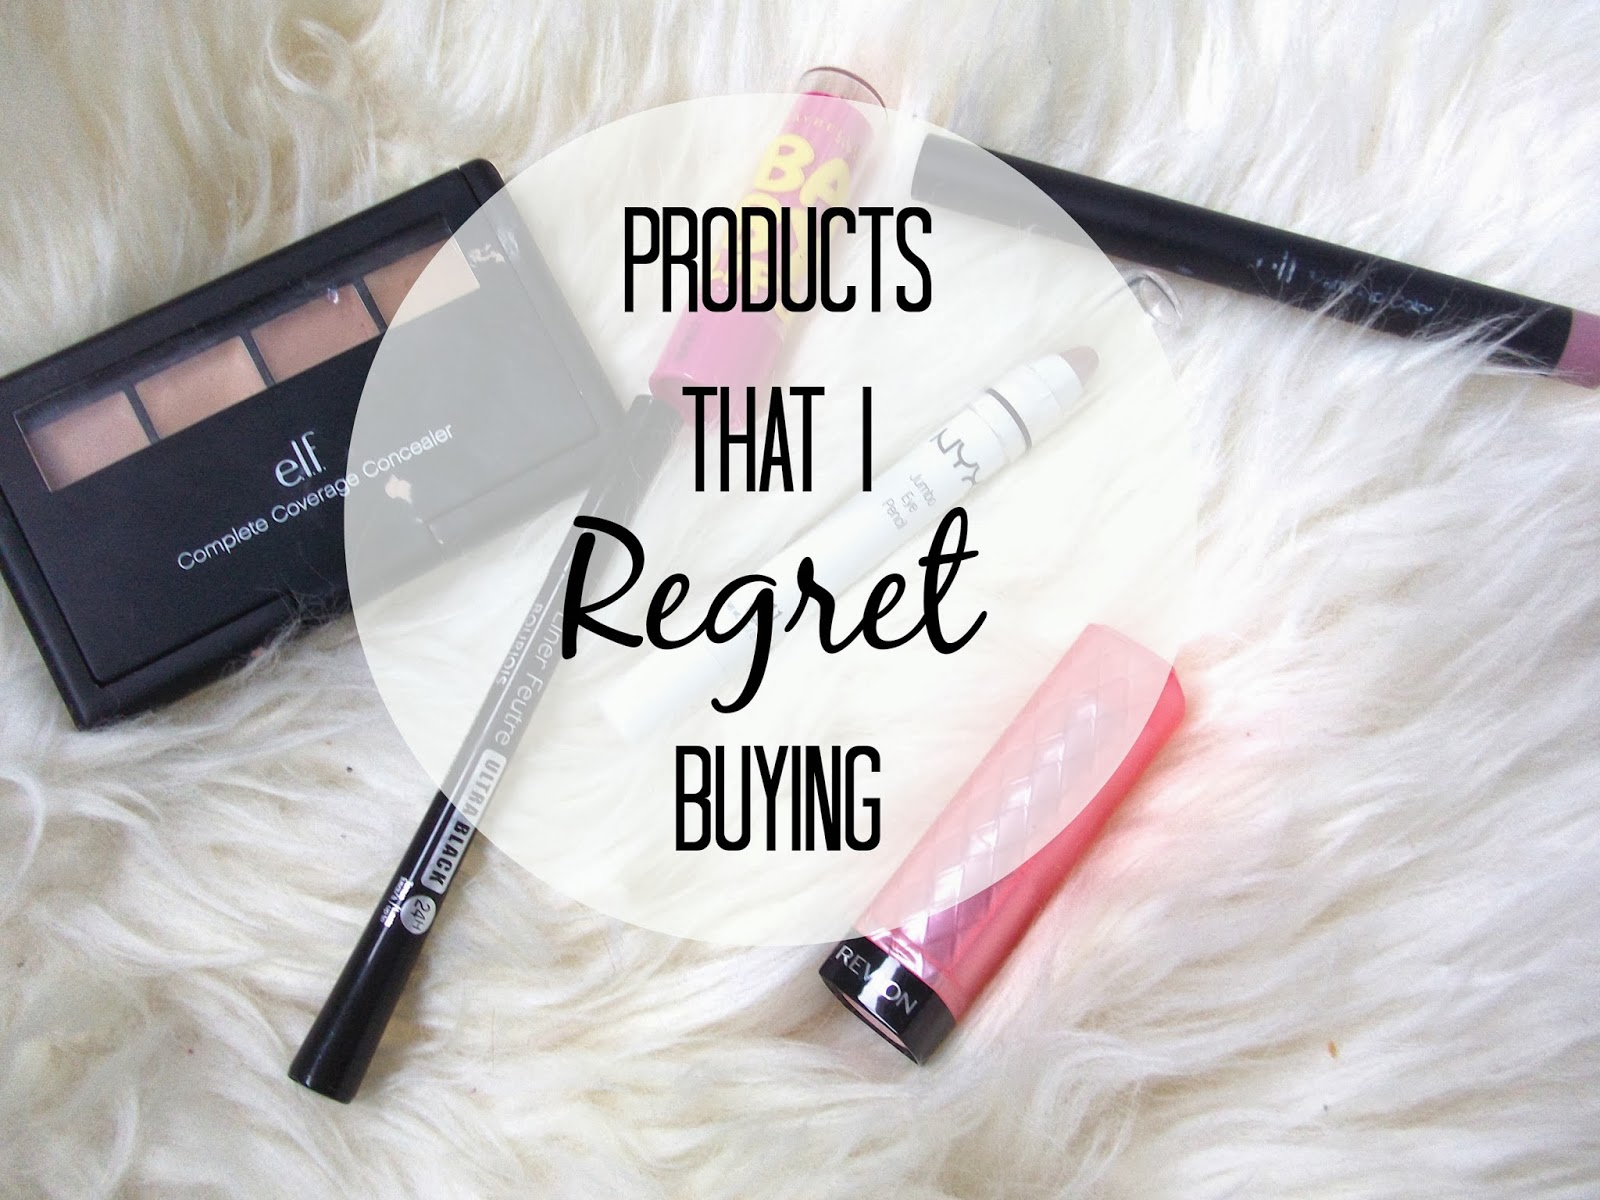 Products That I Regret Buying